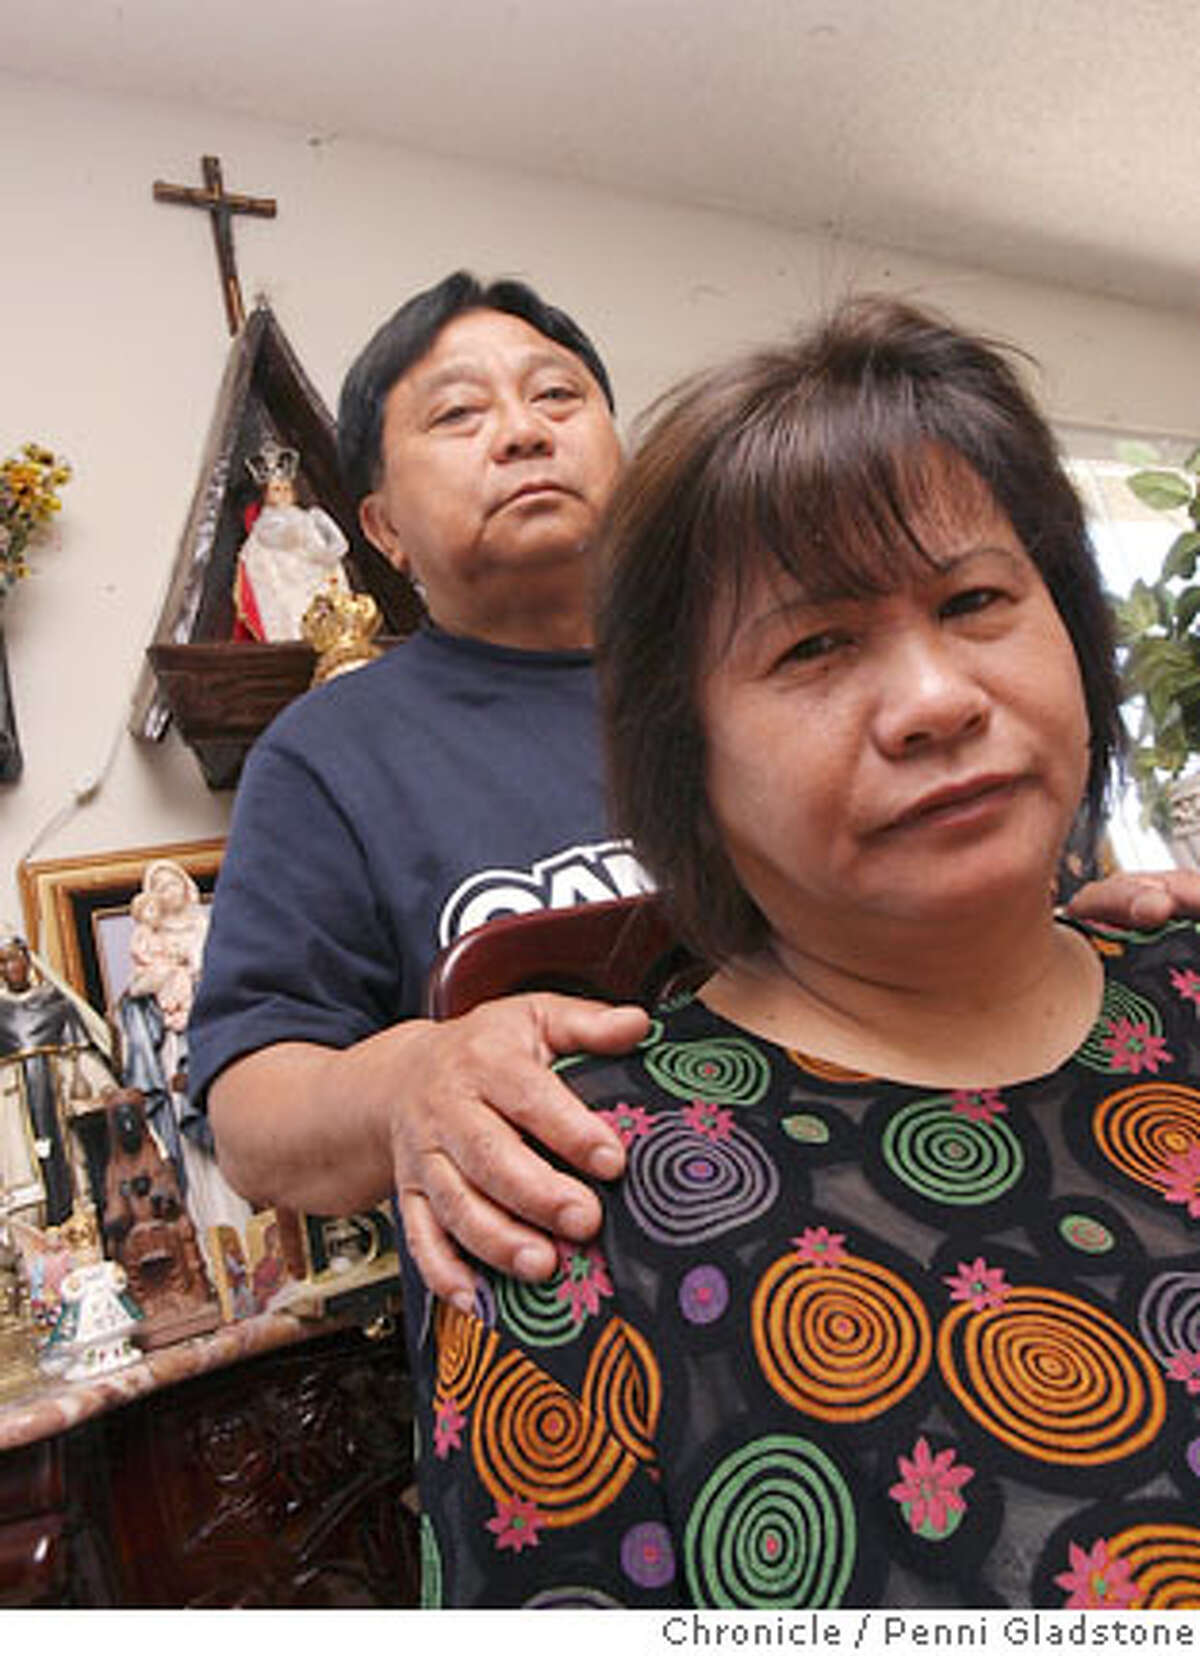 Tomasito Birco and his wife Zenaida ar Parents of officer NICK BIRCO killed in car accident while duty on July 26 during car chase..Officer is from Bay View station. SAN FRANCISCO CHRONICLE/PENNI GLASTONE 7/27/06 San Francisco